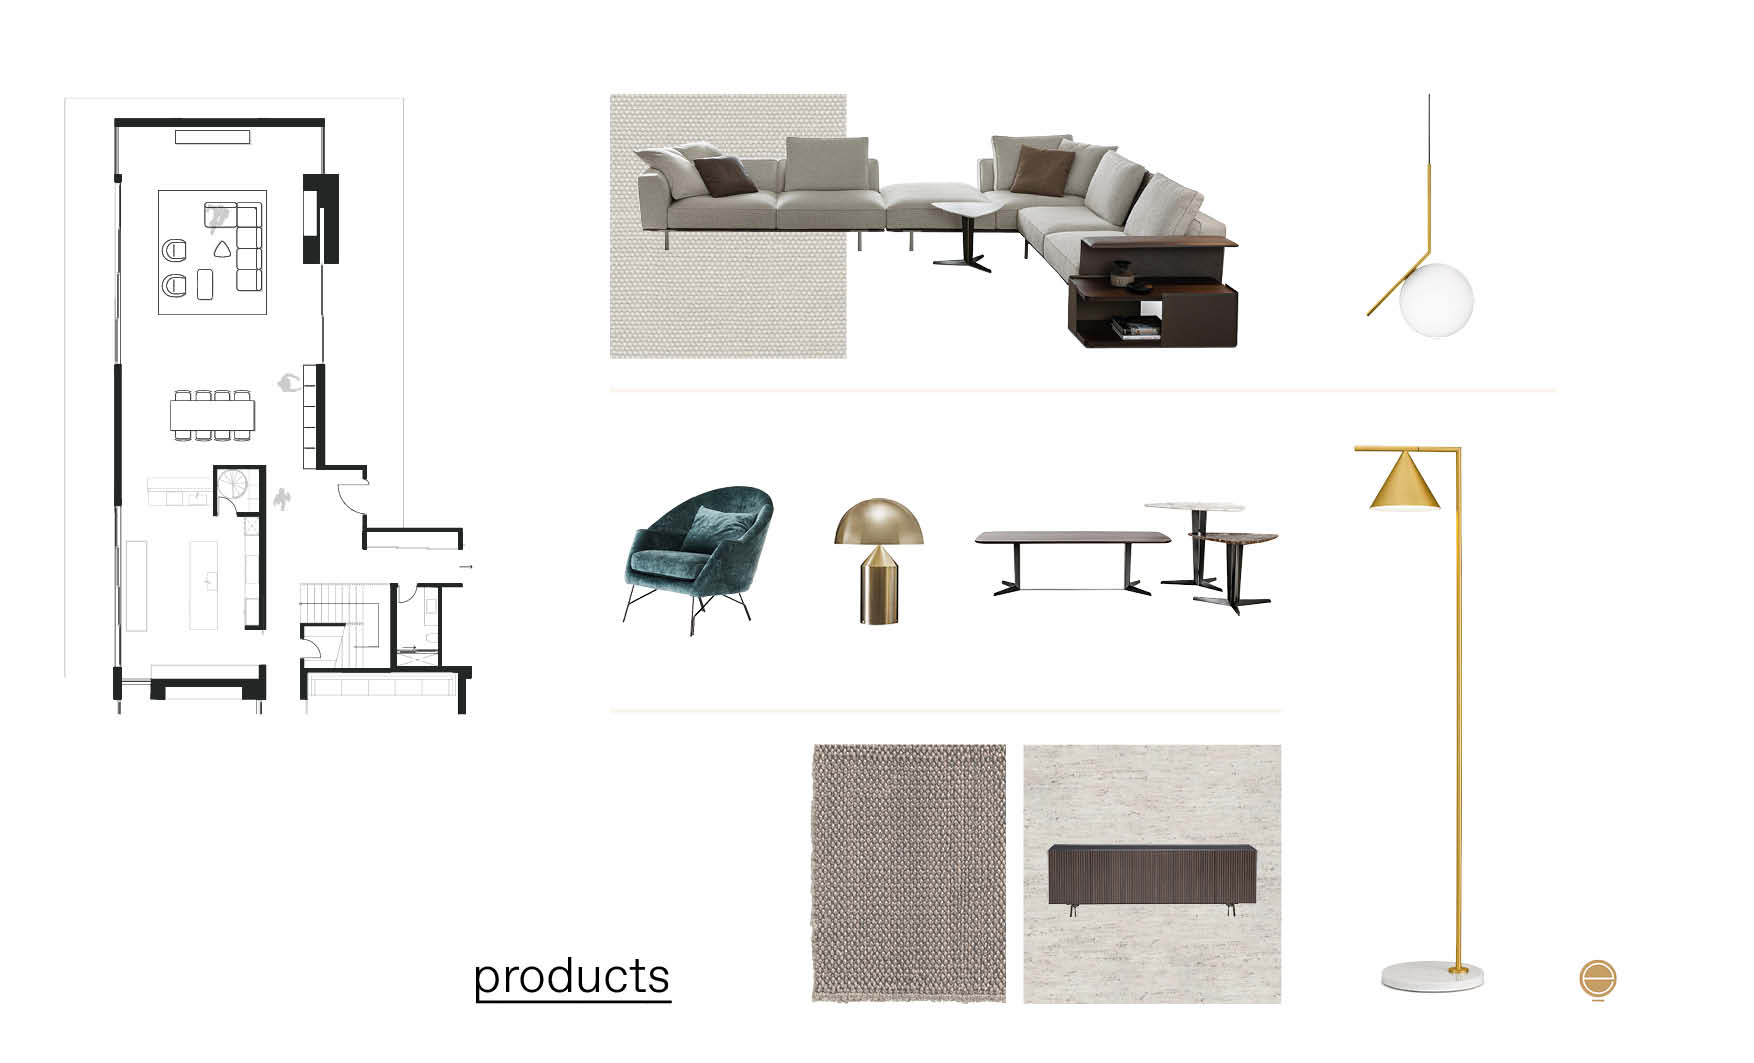 modern Italian living room furniture moodboard with medium priced Italian furniture pieces design by esperiri milano